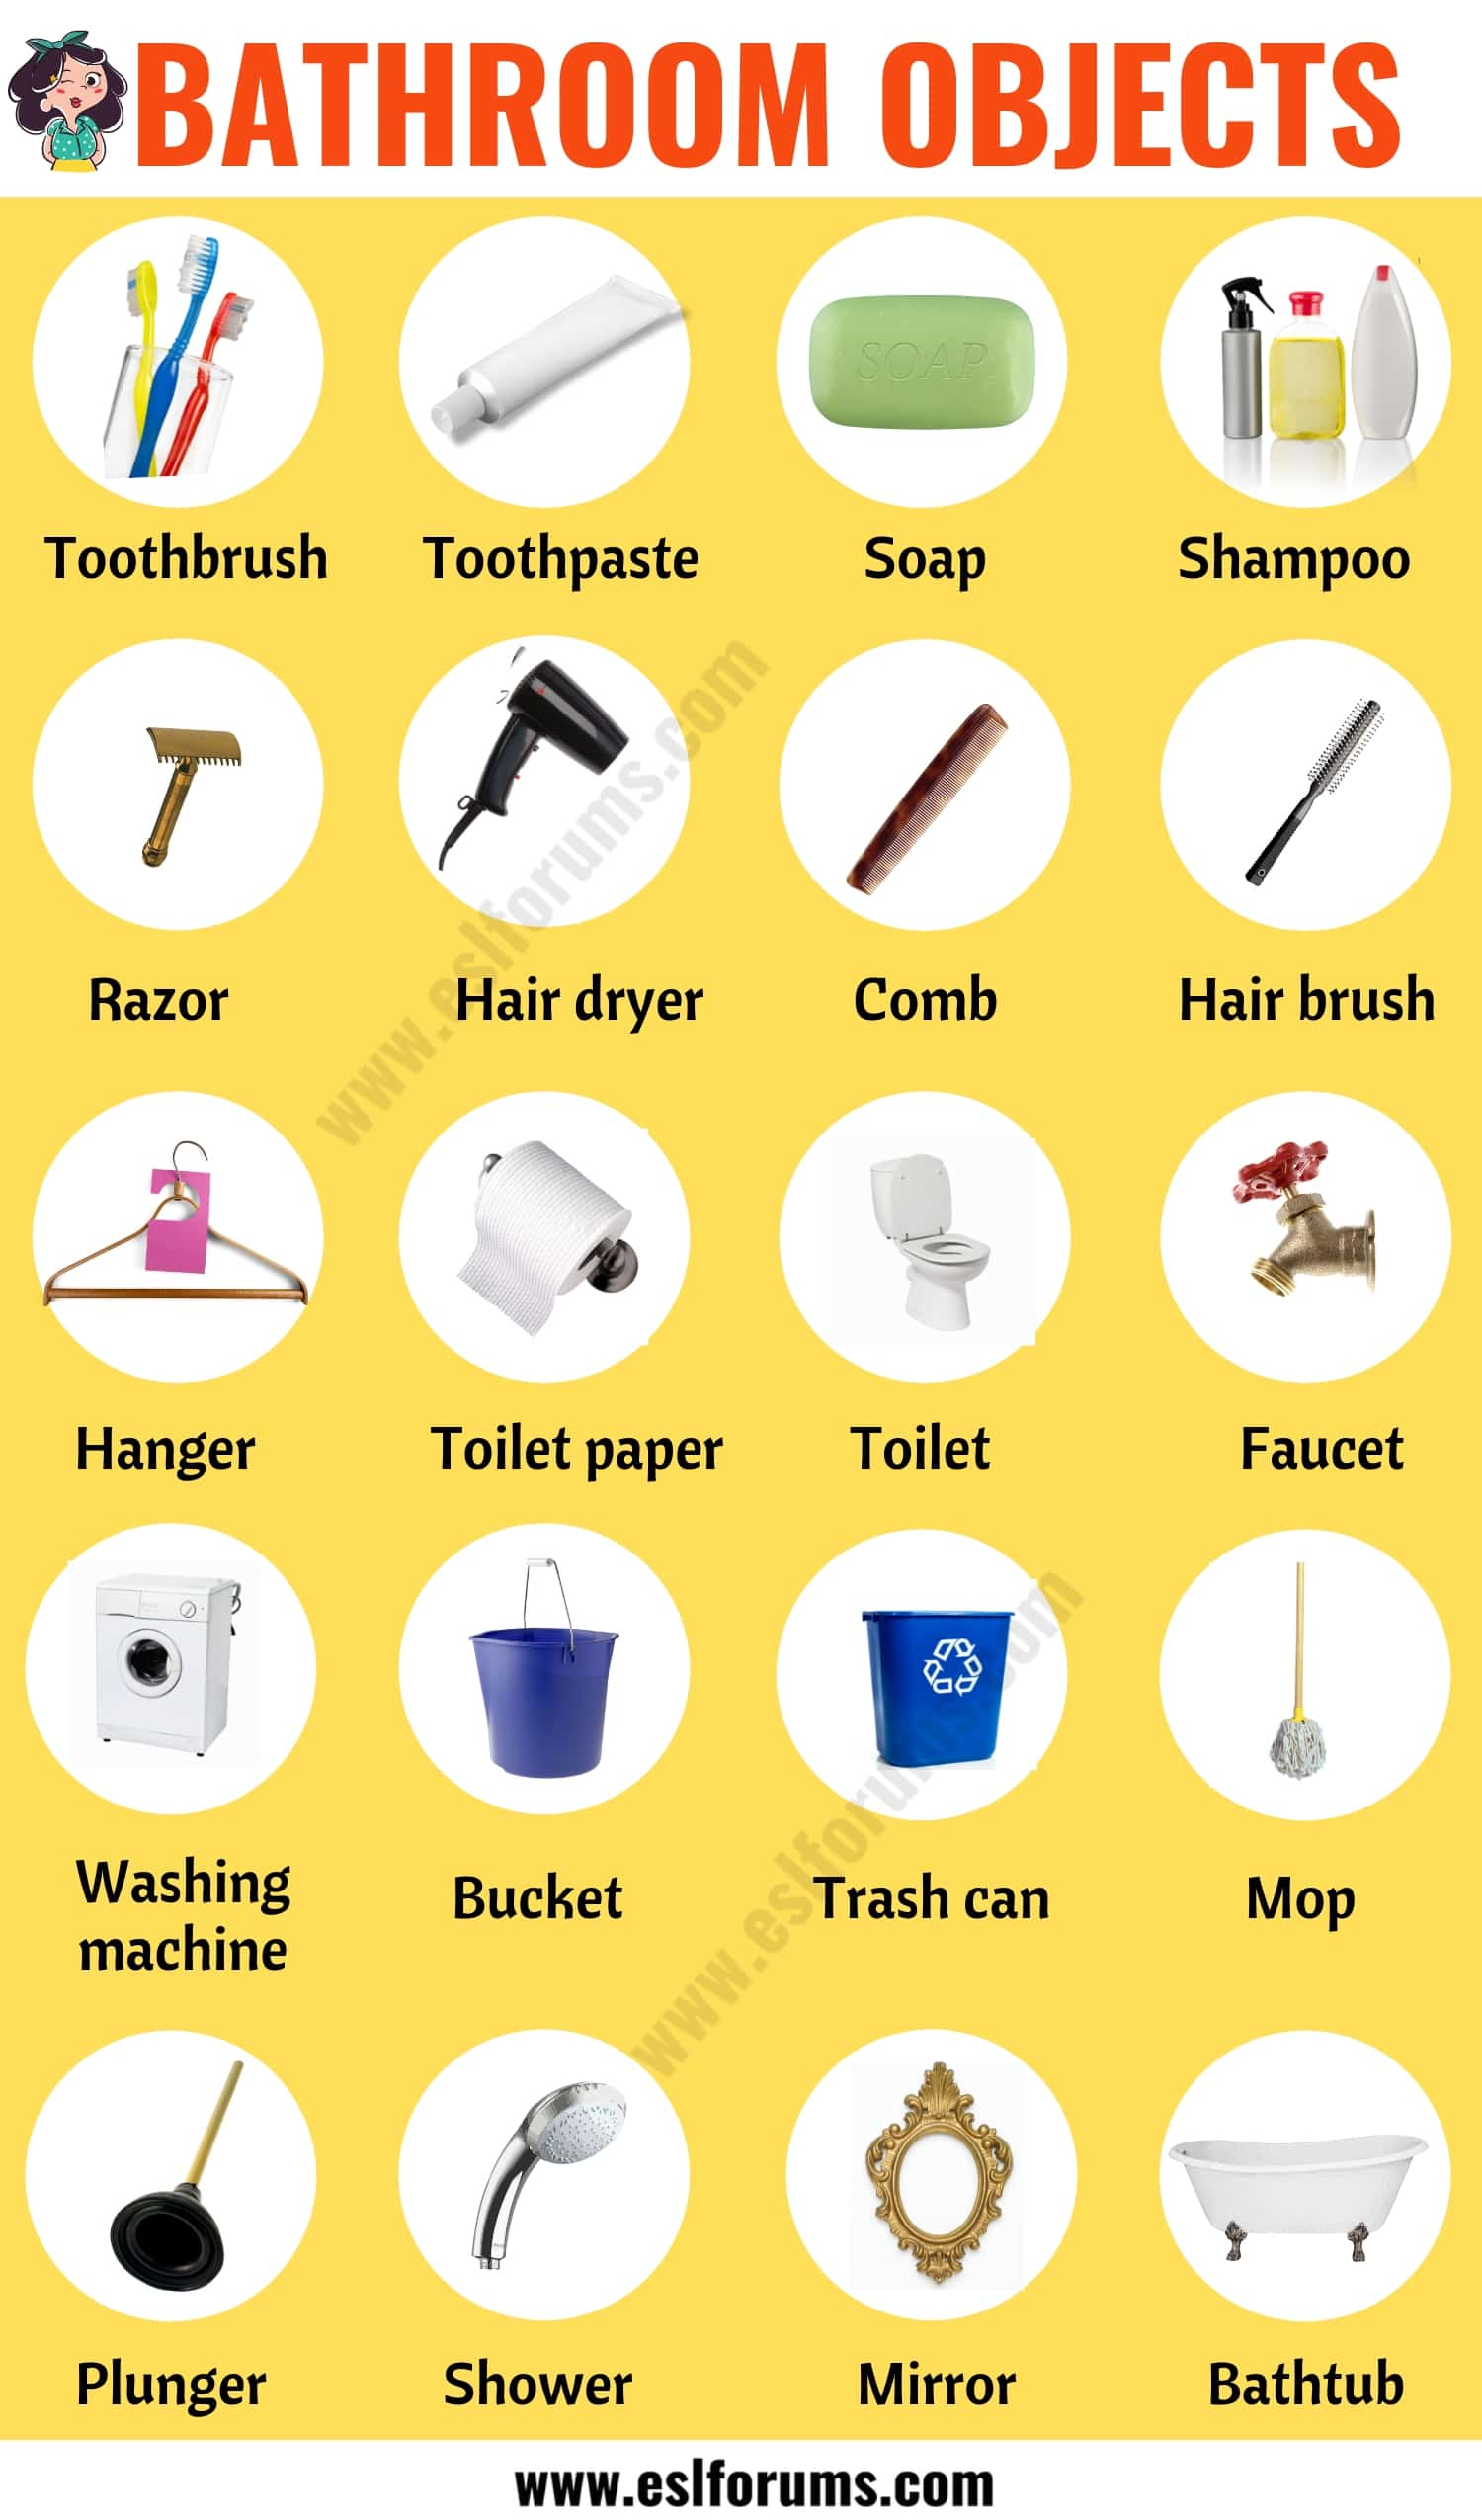 Bathroom Accessories: List of Helpful Items in the Bathroom with ESL Picture